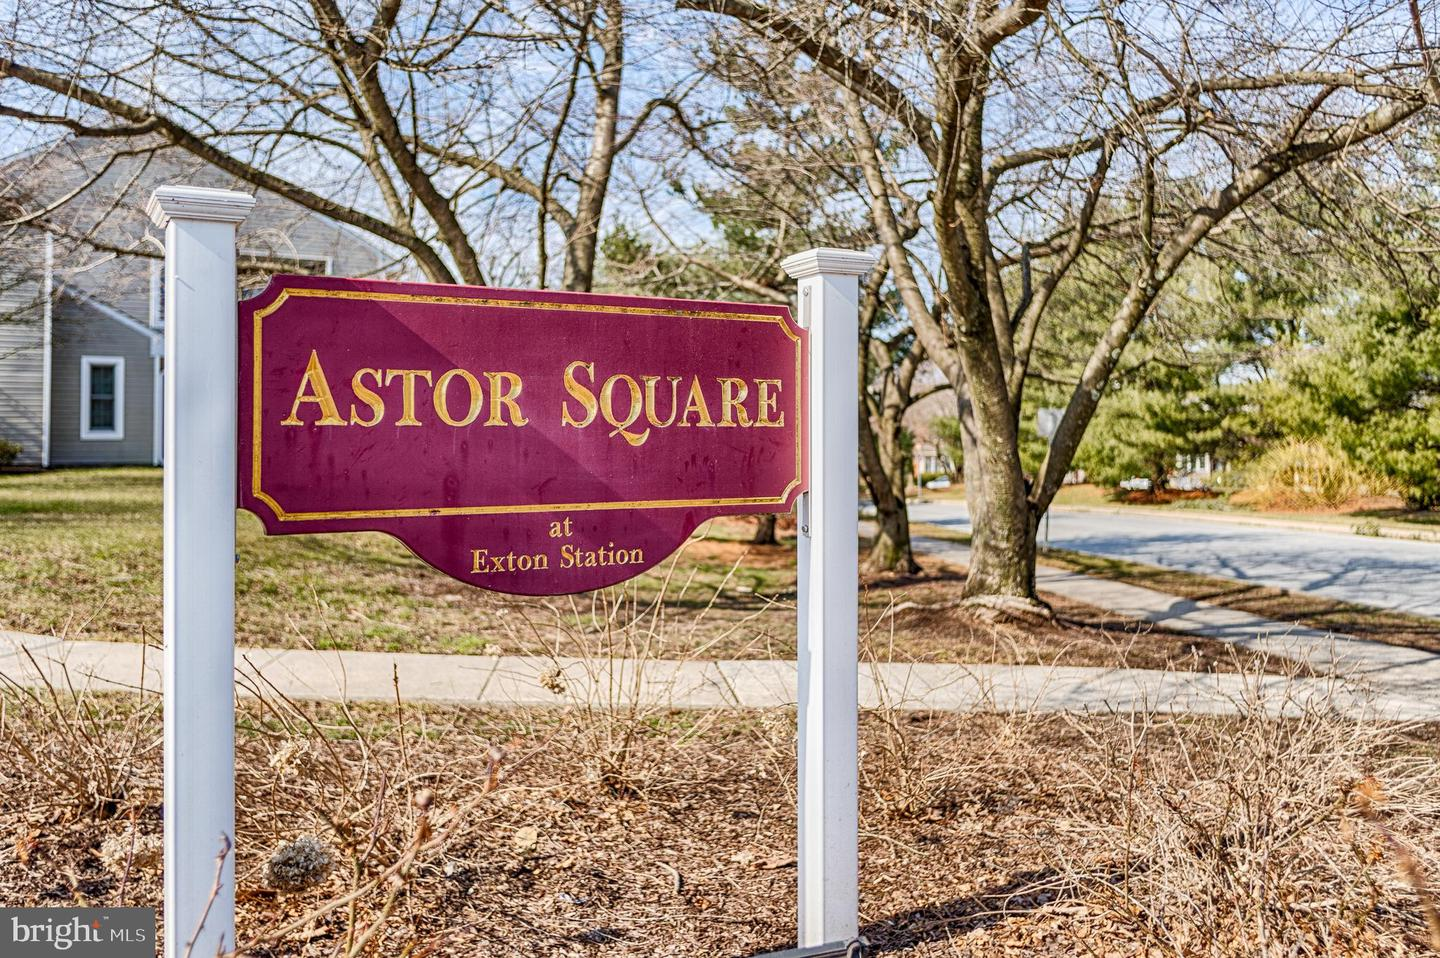 539 Astor Square #27 West Chester , PA 19380